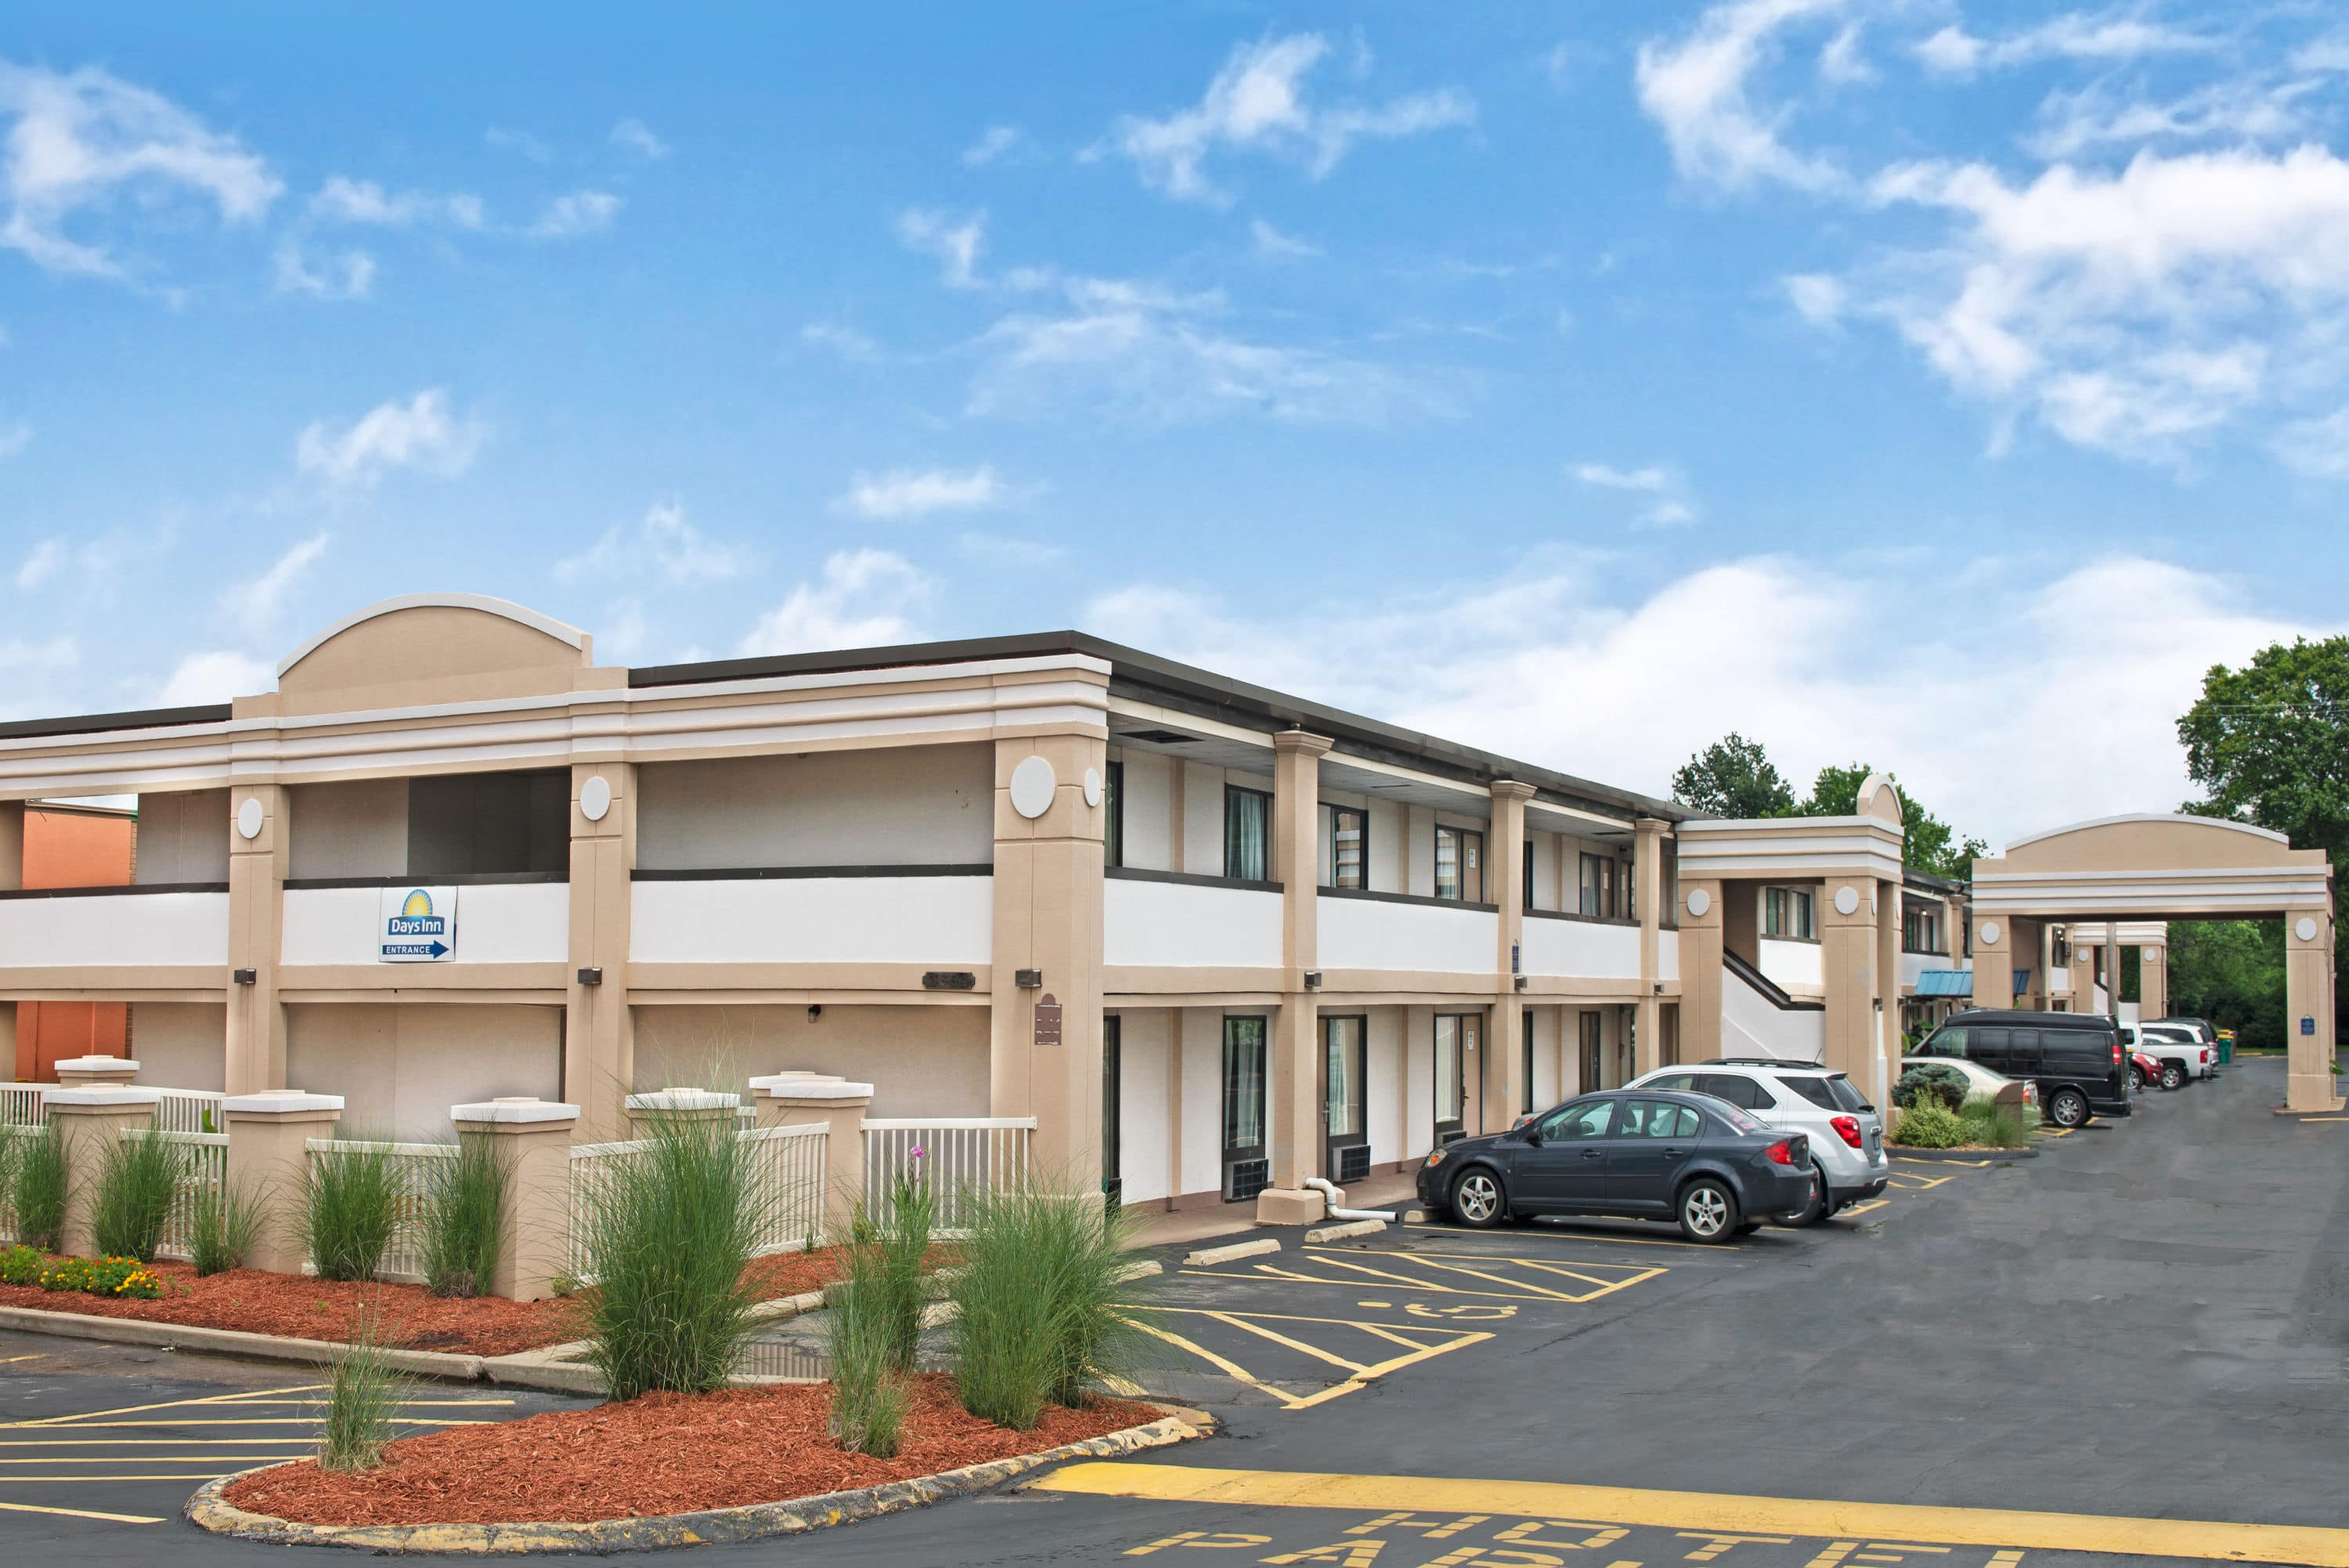 Free Exterior Of Days Inn St Louis Lindbergh Boulevard Hotel In Saint Missouri With Hotels Near Childrens Hospital